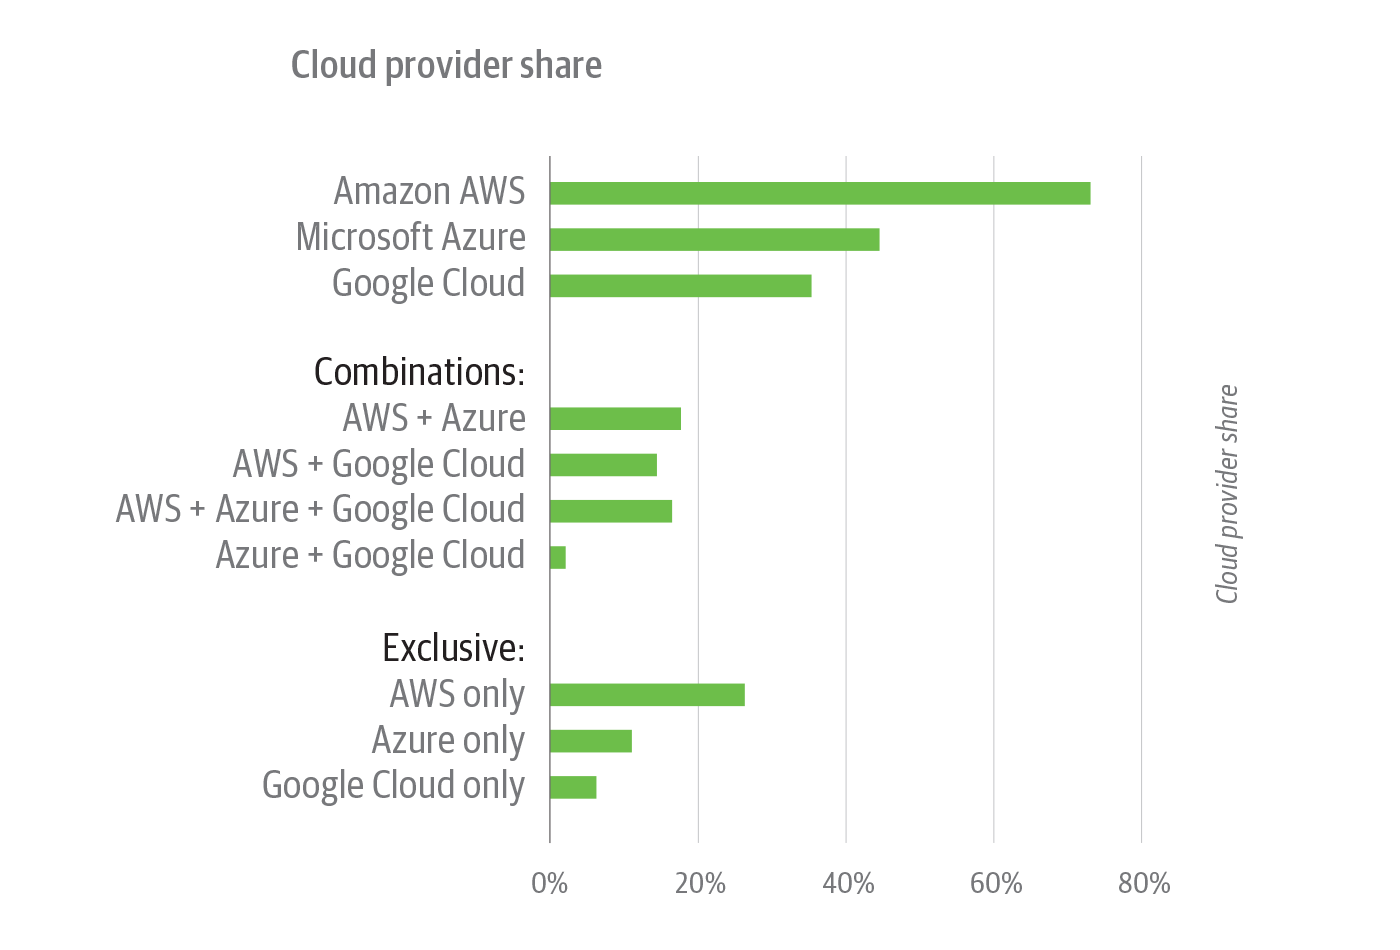 Cloud provider share among survey respondents